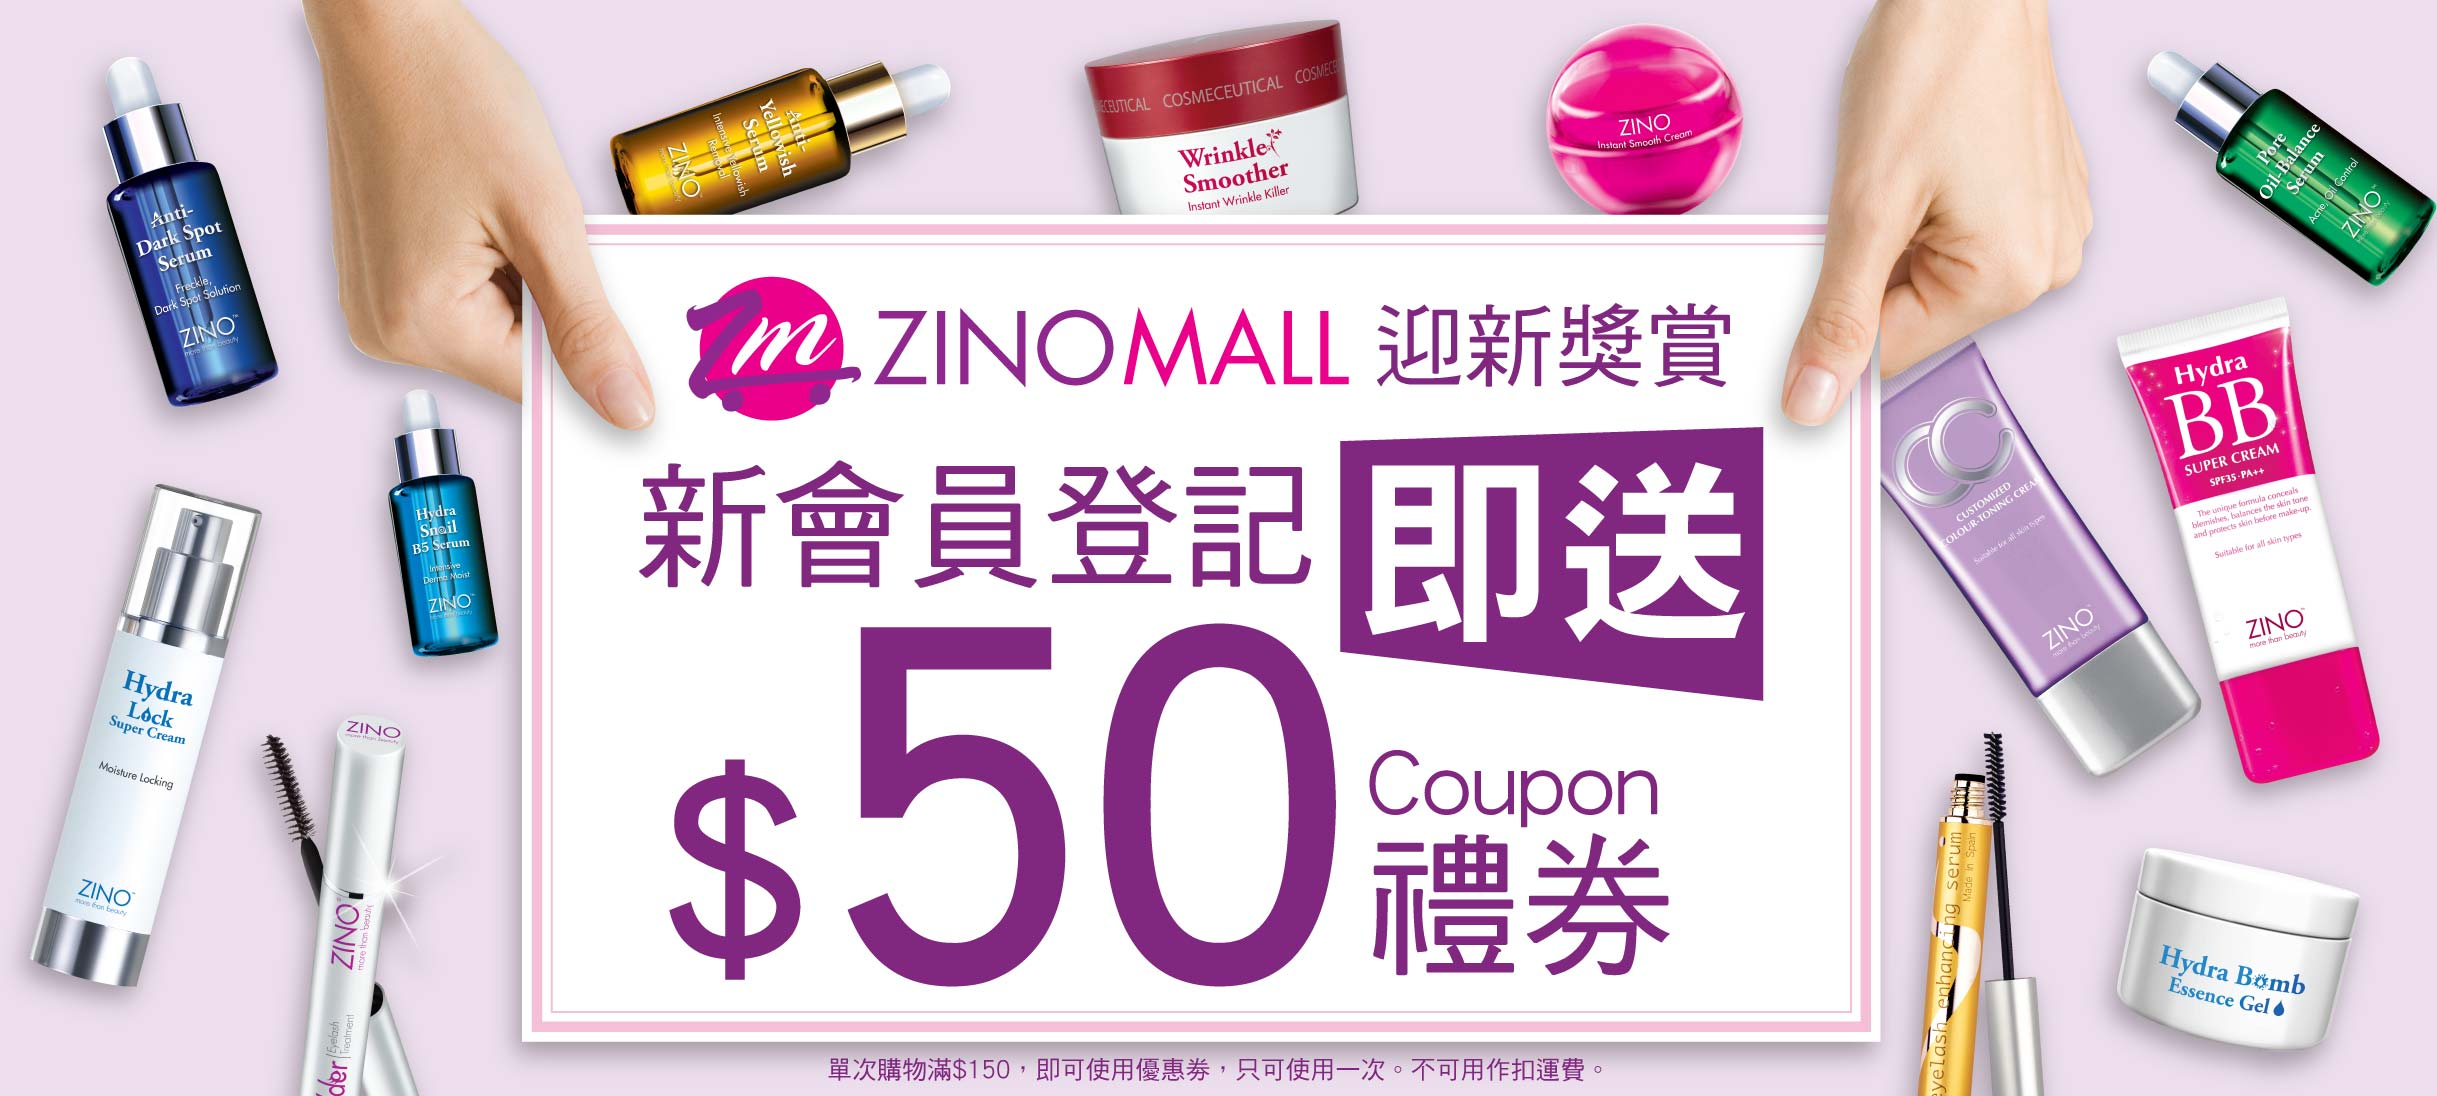 ZINOMall_Welcome_Offer_Banner(1170x526px)-01